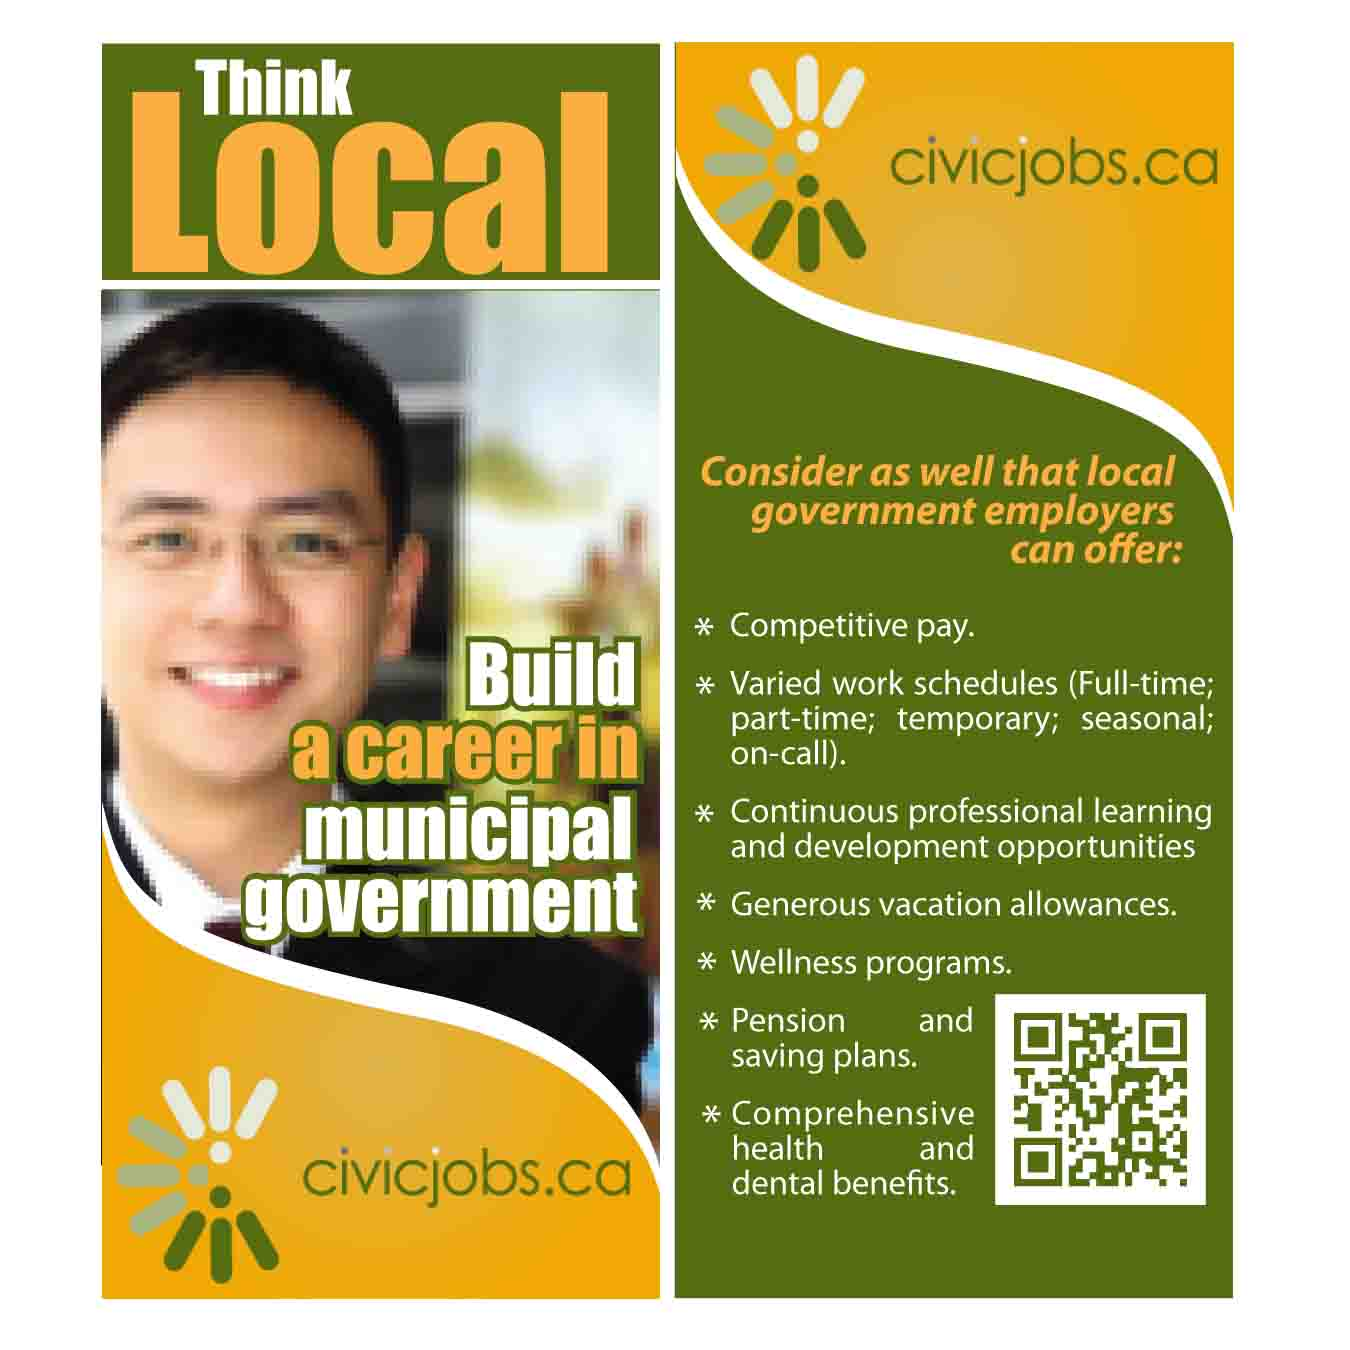 "Print Design by Agung Nugroho - Entry No. 20 in the Print Design Contest Print Design Wanted for CivicJobs.ca - 4"" X 9"" rack card, 2 sided, print ready.."